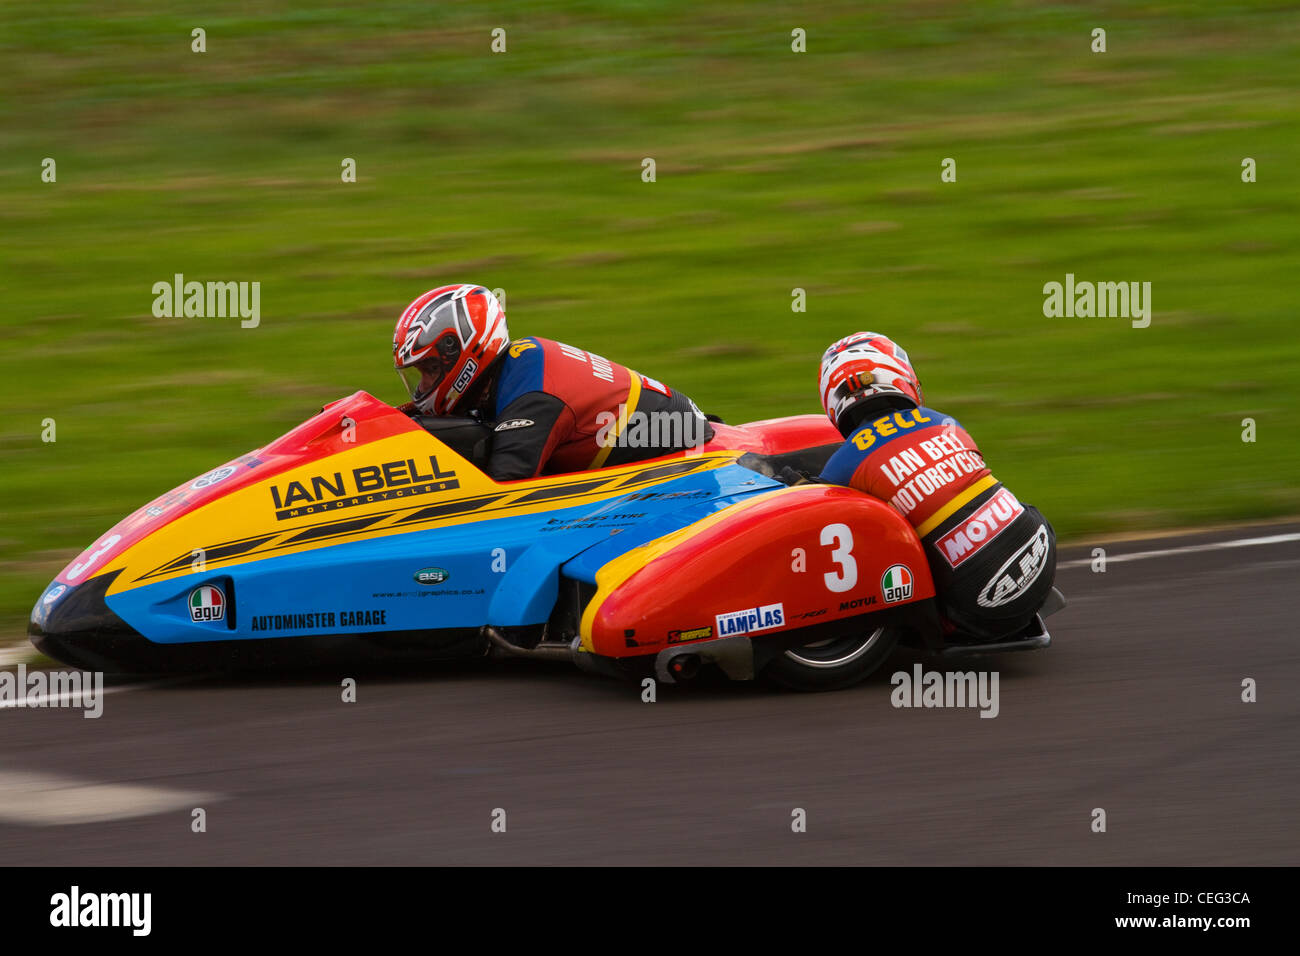 Racing Sidecar Stock Photos Images Alamy Tt2011 Sidecars A Photograph Of Formula 2 Outfit At Castle Combe Image